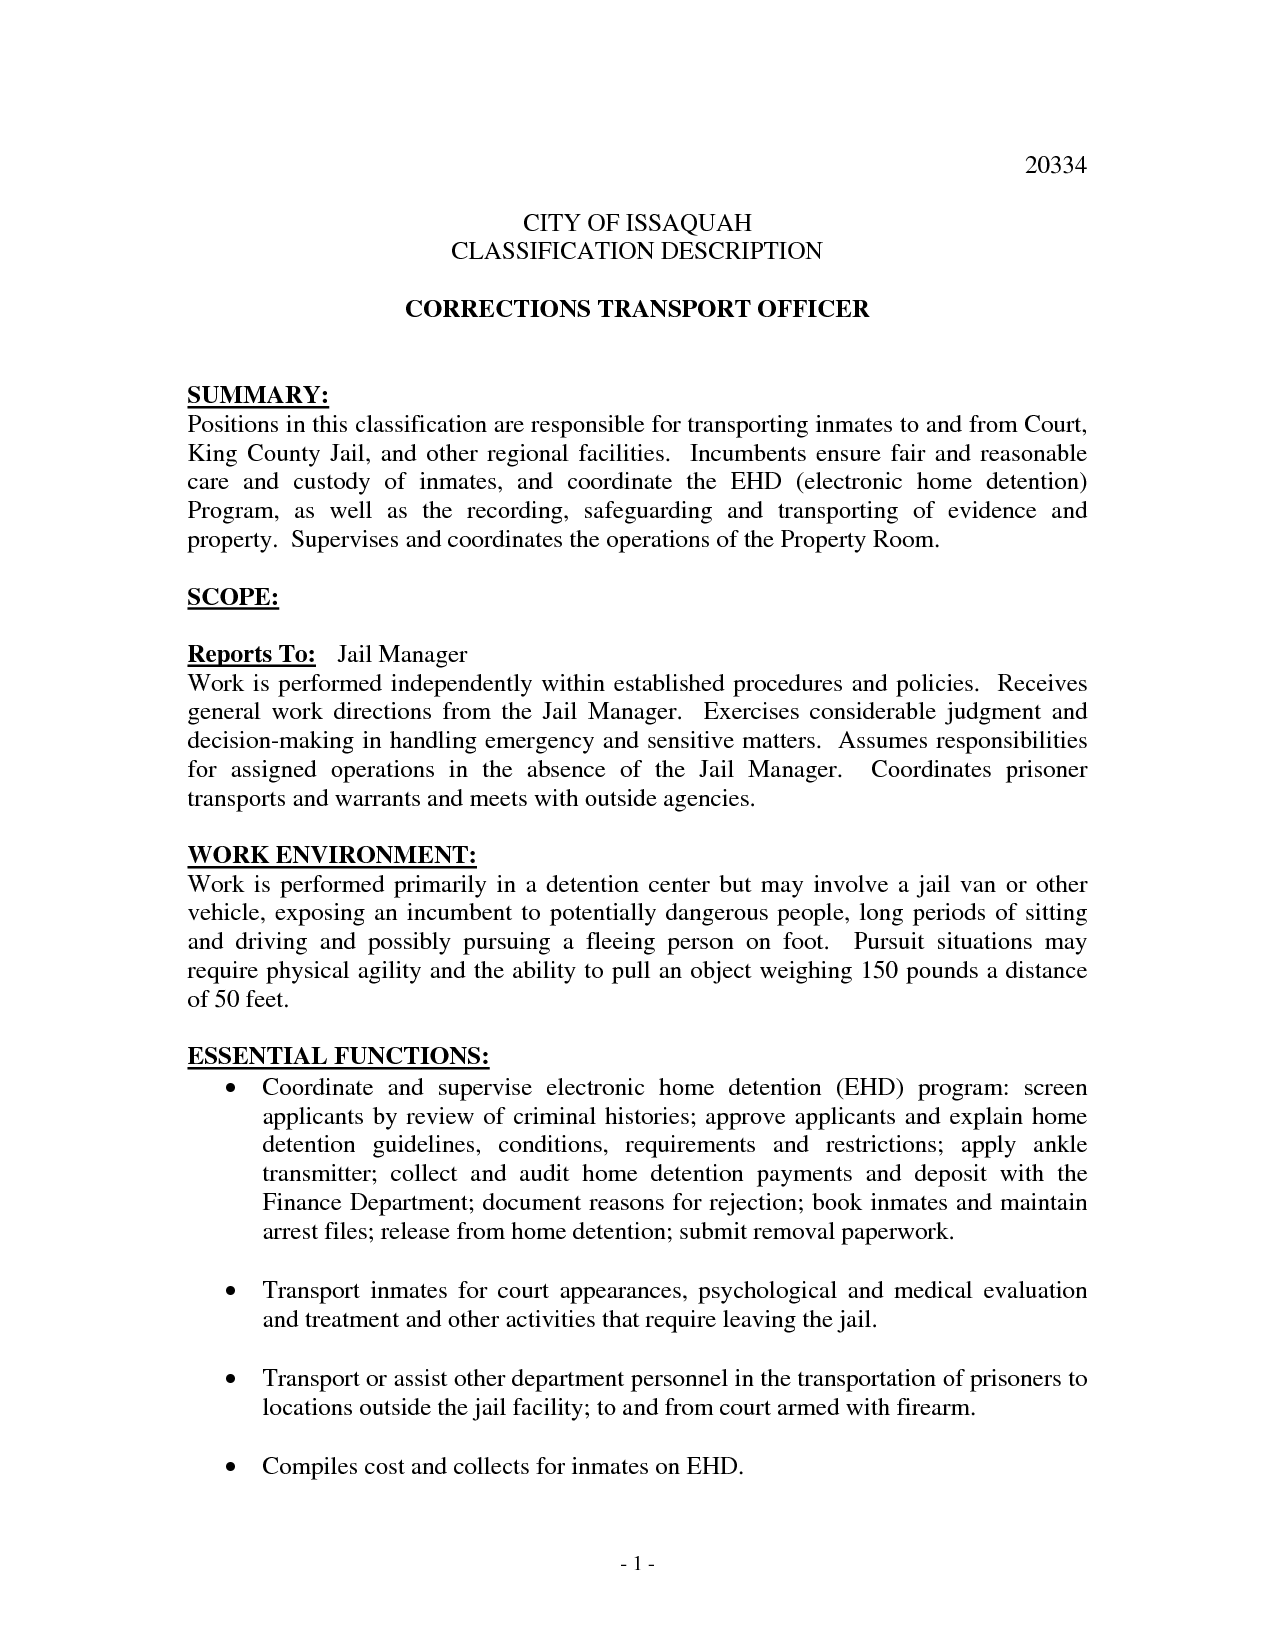 Correctional Officer Resume No Experience Resume Examples Good Resume Examples Basic Resume Examples